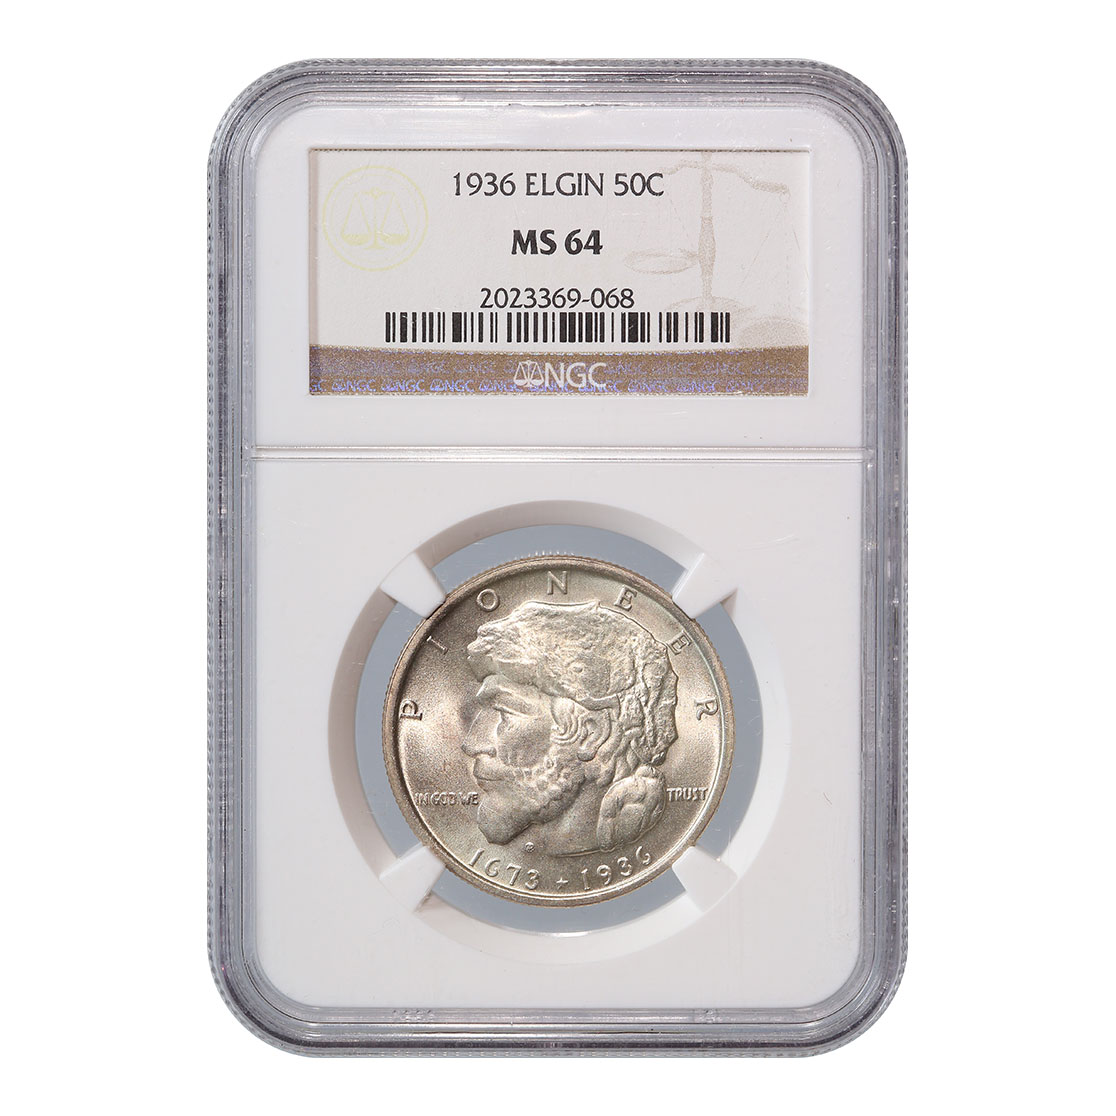 Certified Commemorative Half Dollar Elgin 1936 MS64 NGC